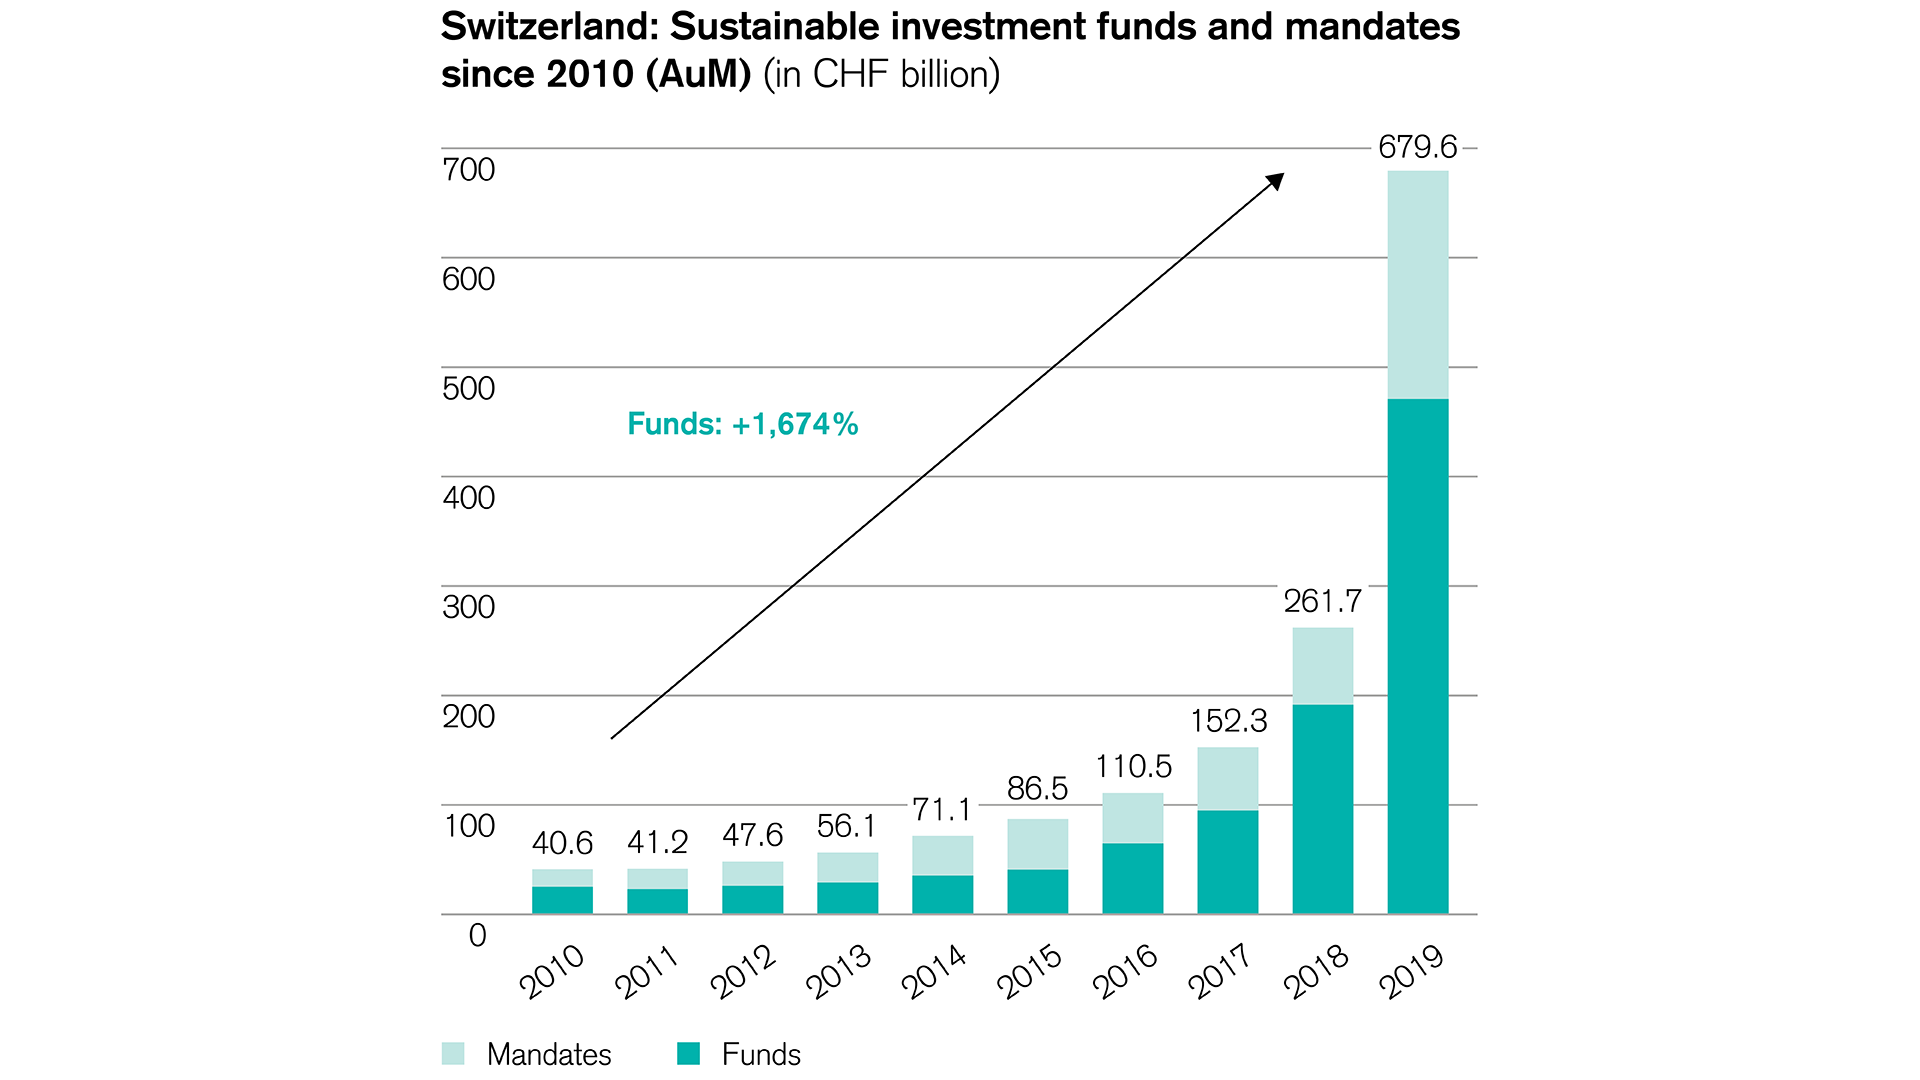 Sustainability funds gained popularity over past decade